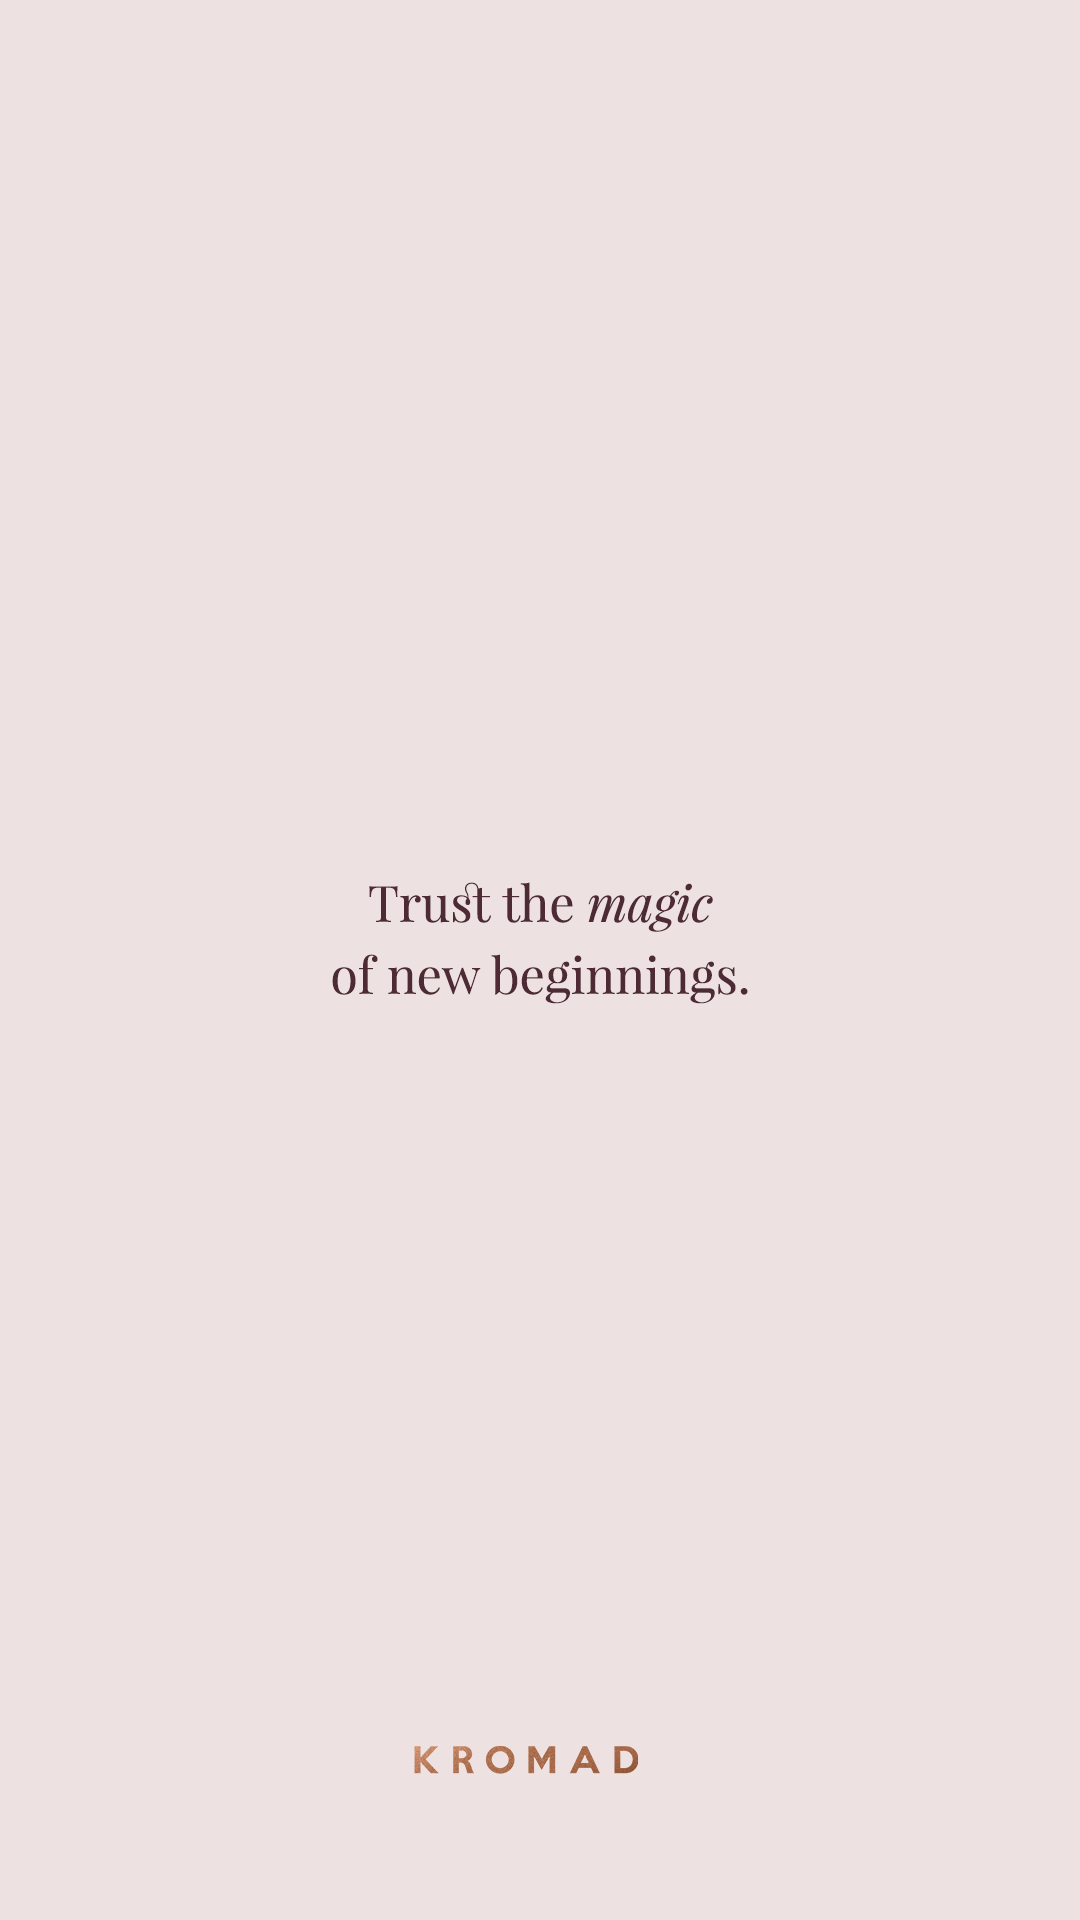 Trust The Magic Of New Beginnings Motivational Quotes Inspirational Quotes Life Quotes Quotes To Beginning Quotes New Beginning Quotes Blogging Quotes